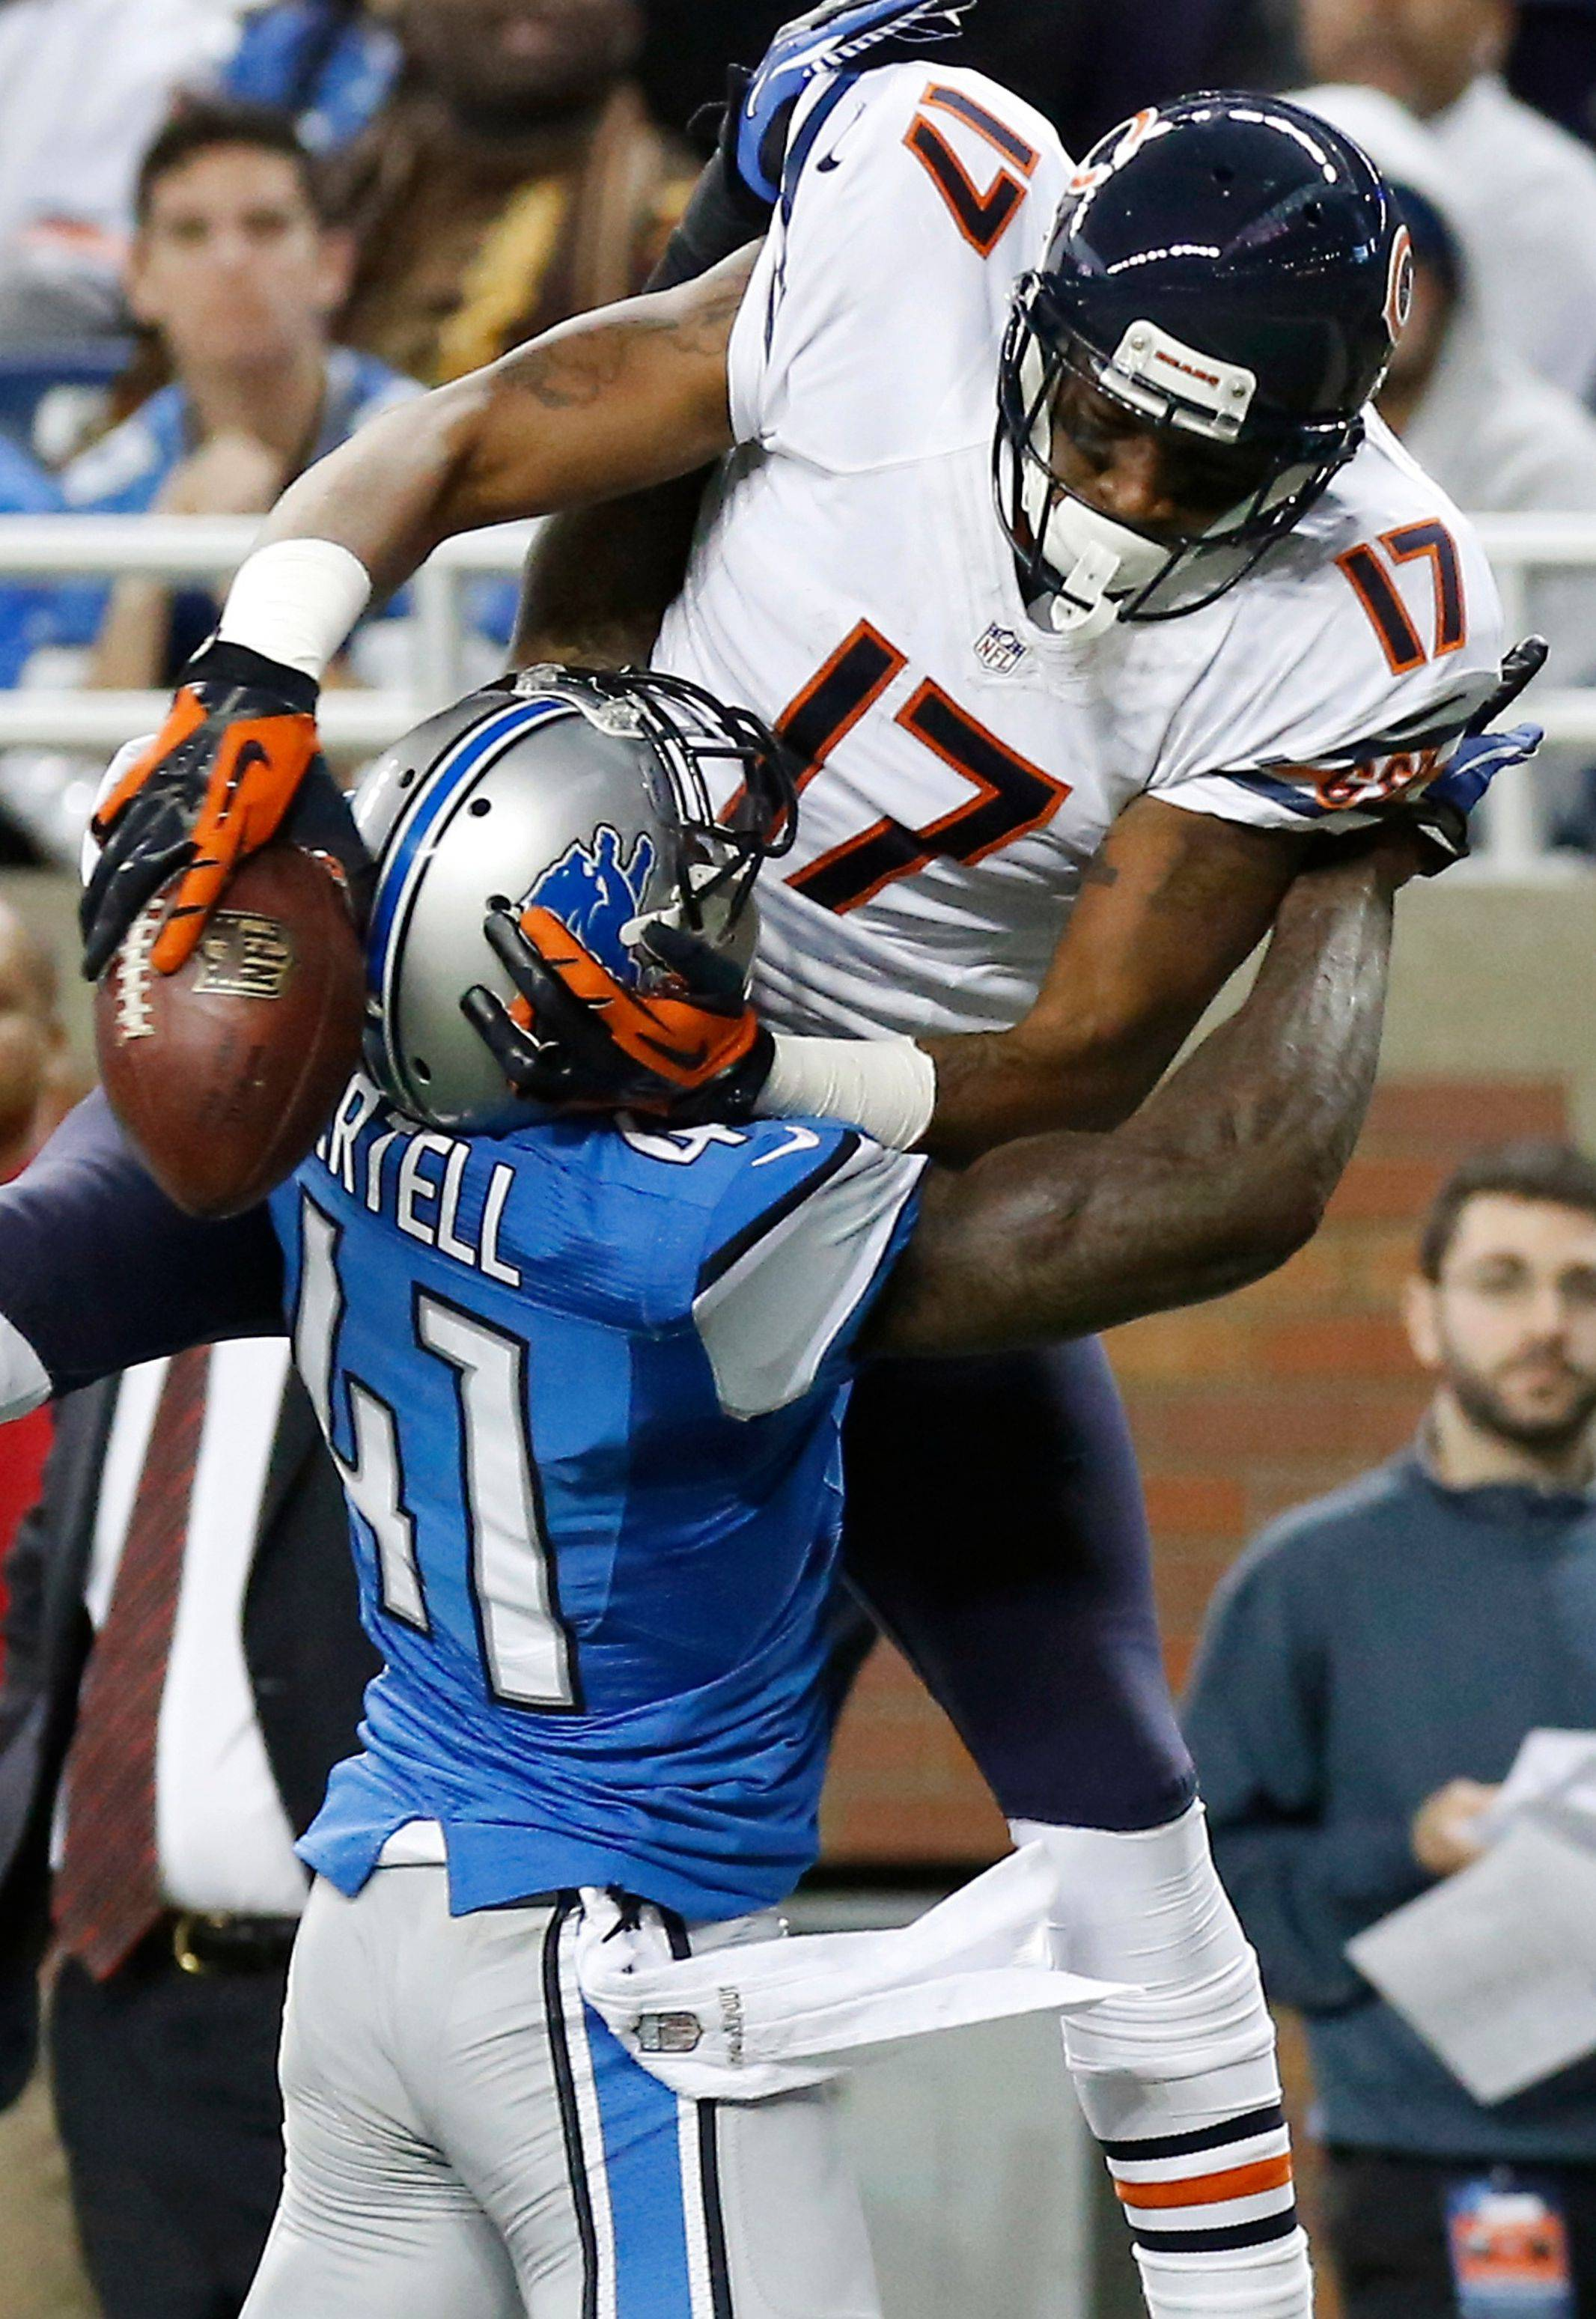 Alshon Jeffery had 4 catches for 76 yards, including a 55-yarder on the Bears� first play from scrimmage. Jeffery